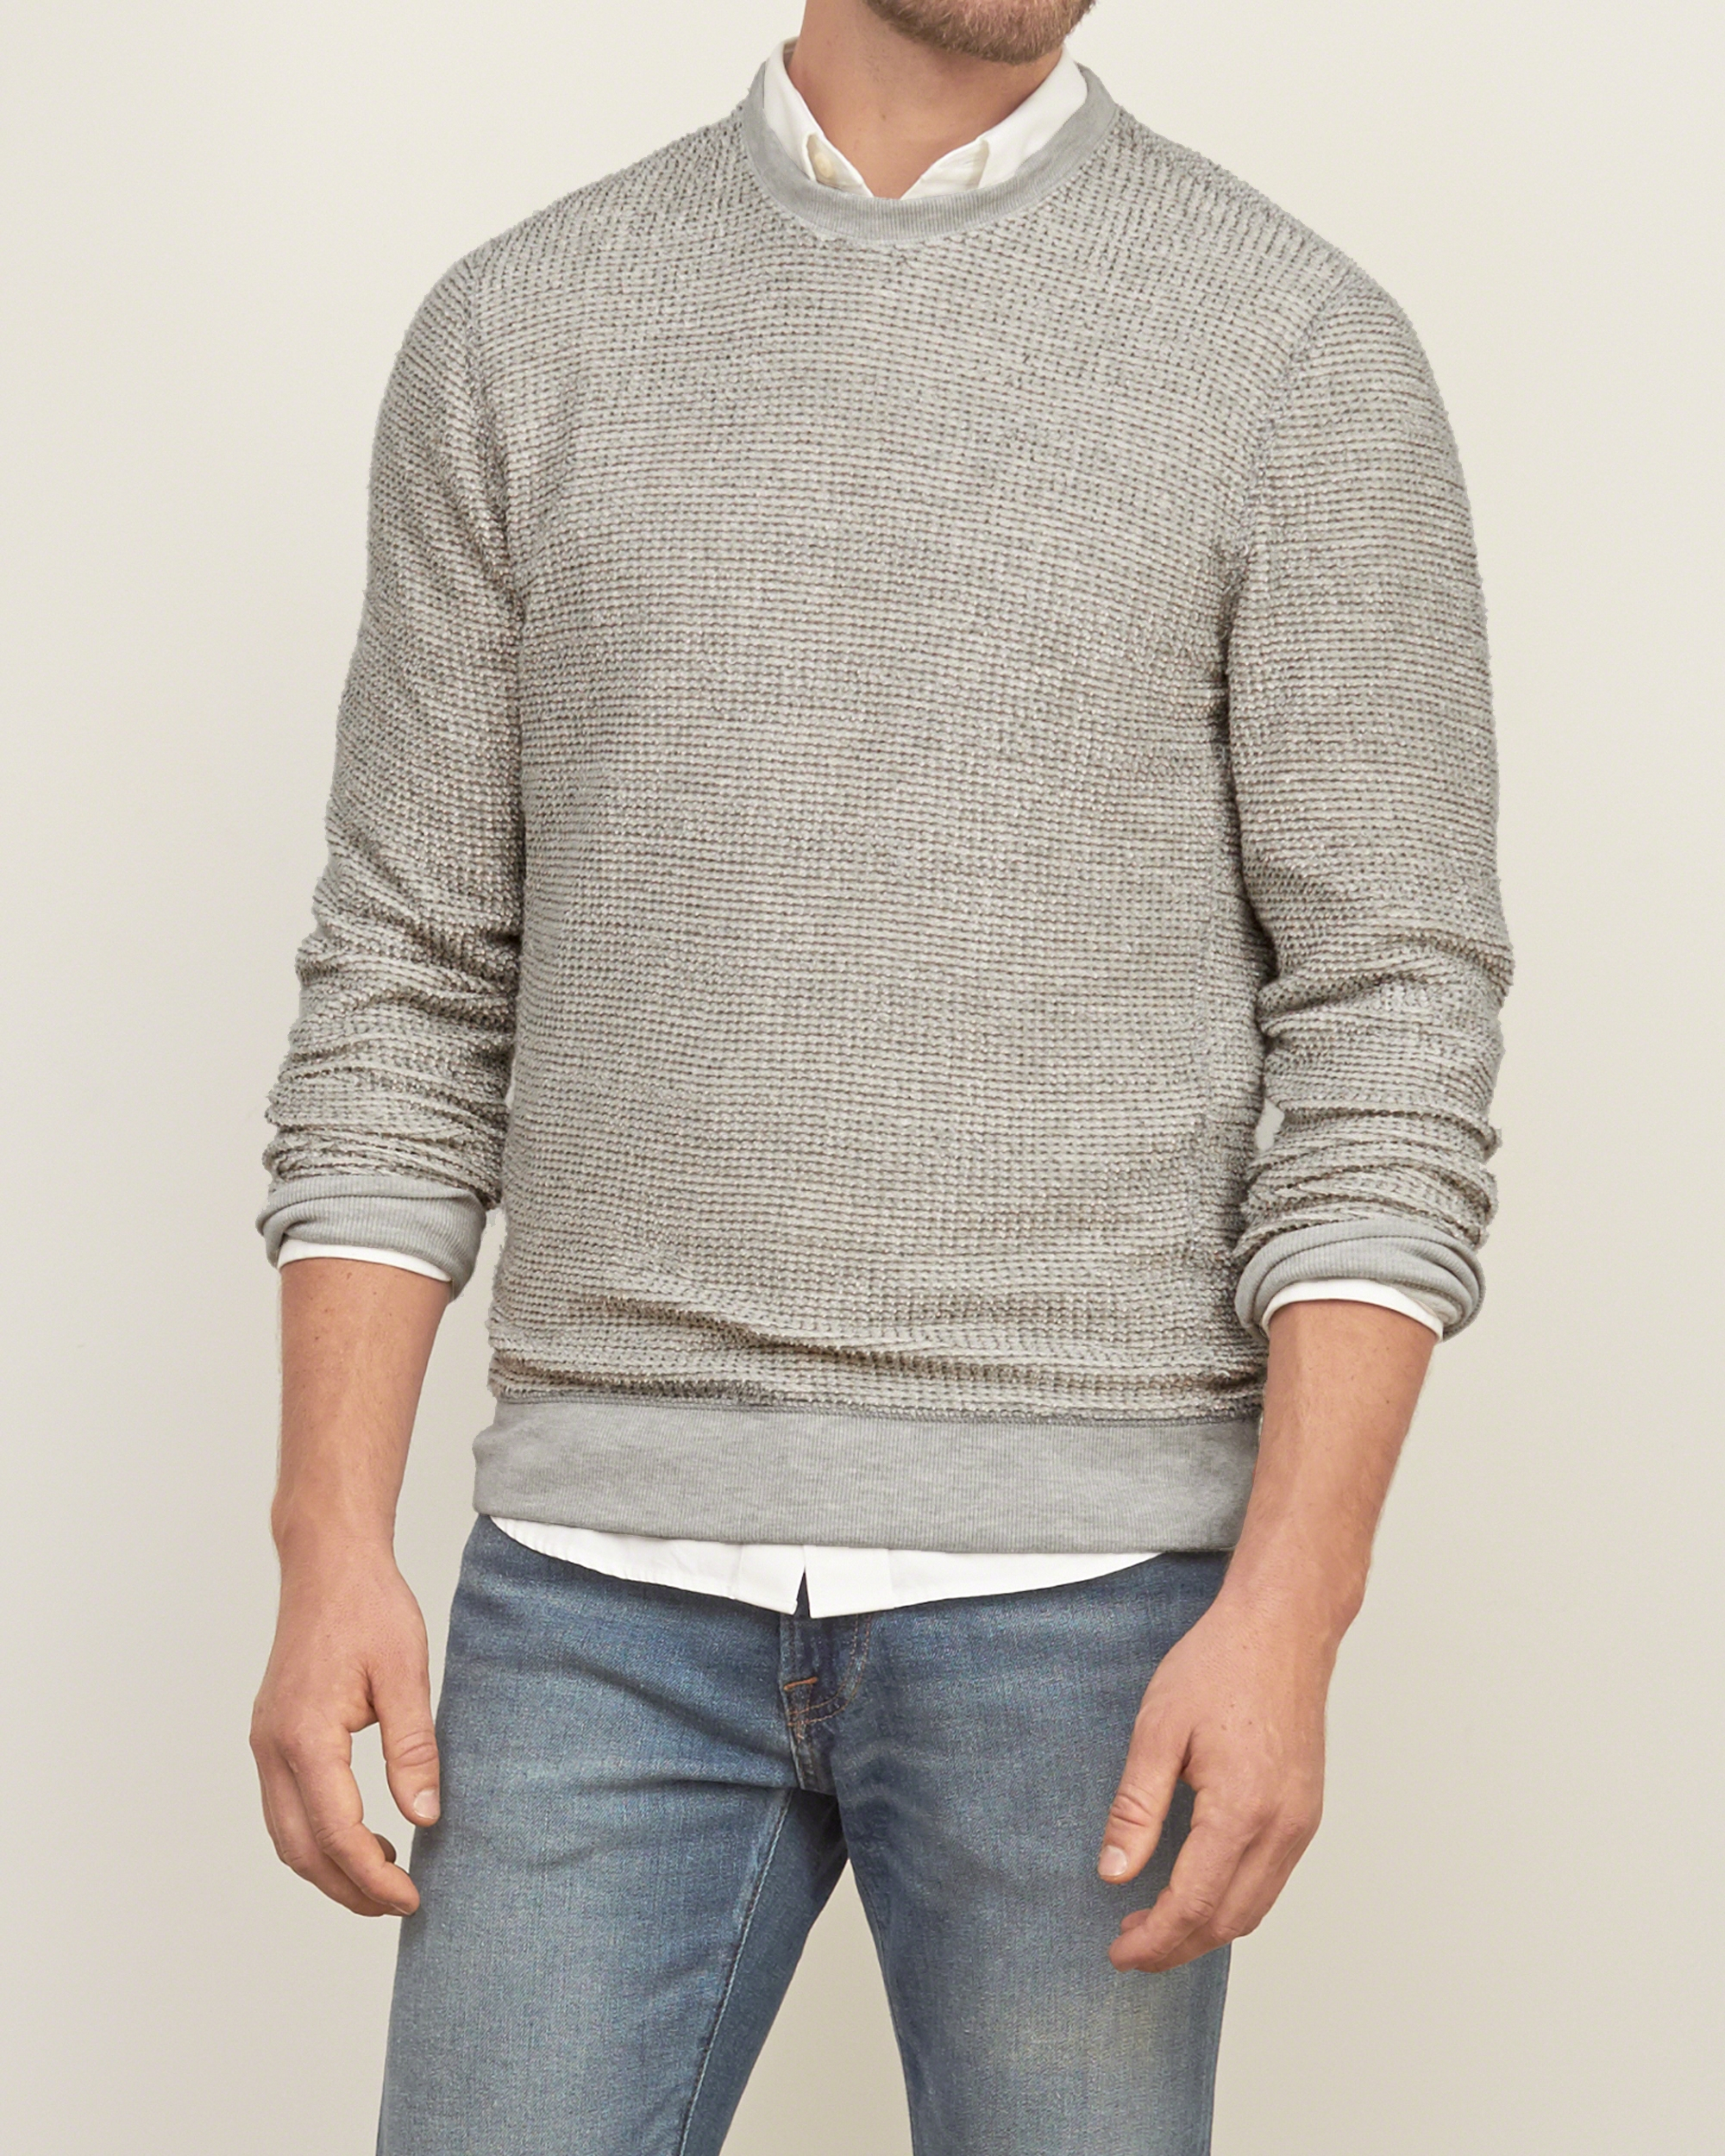 Abercrombie & Fitch Ezra Fitch Crew Sweatshirt In Gray For